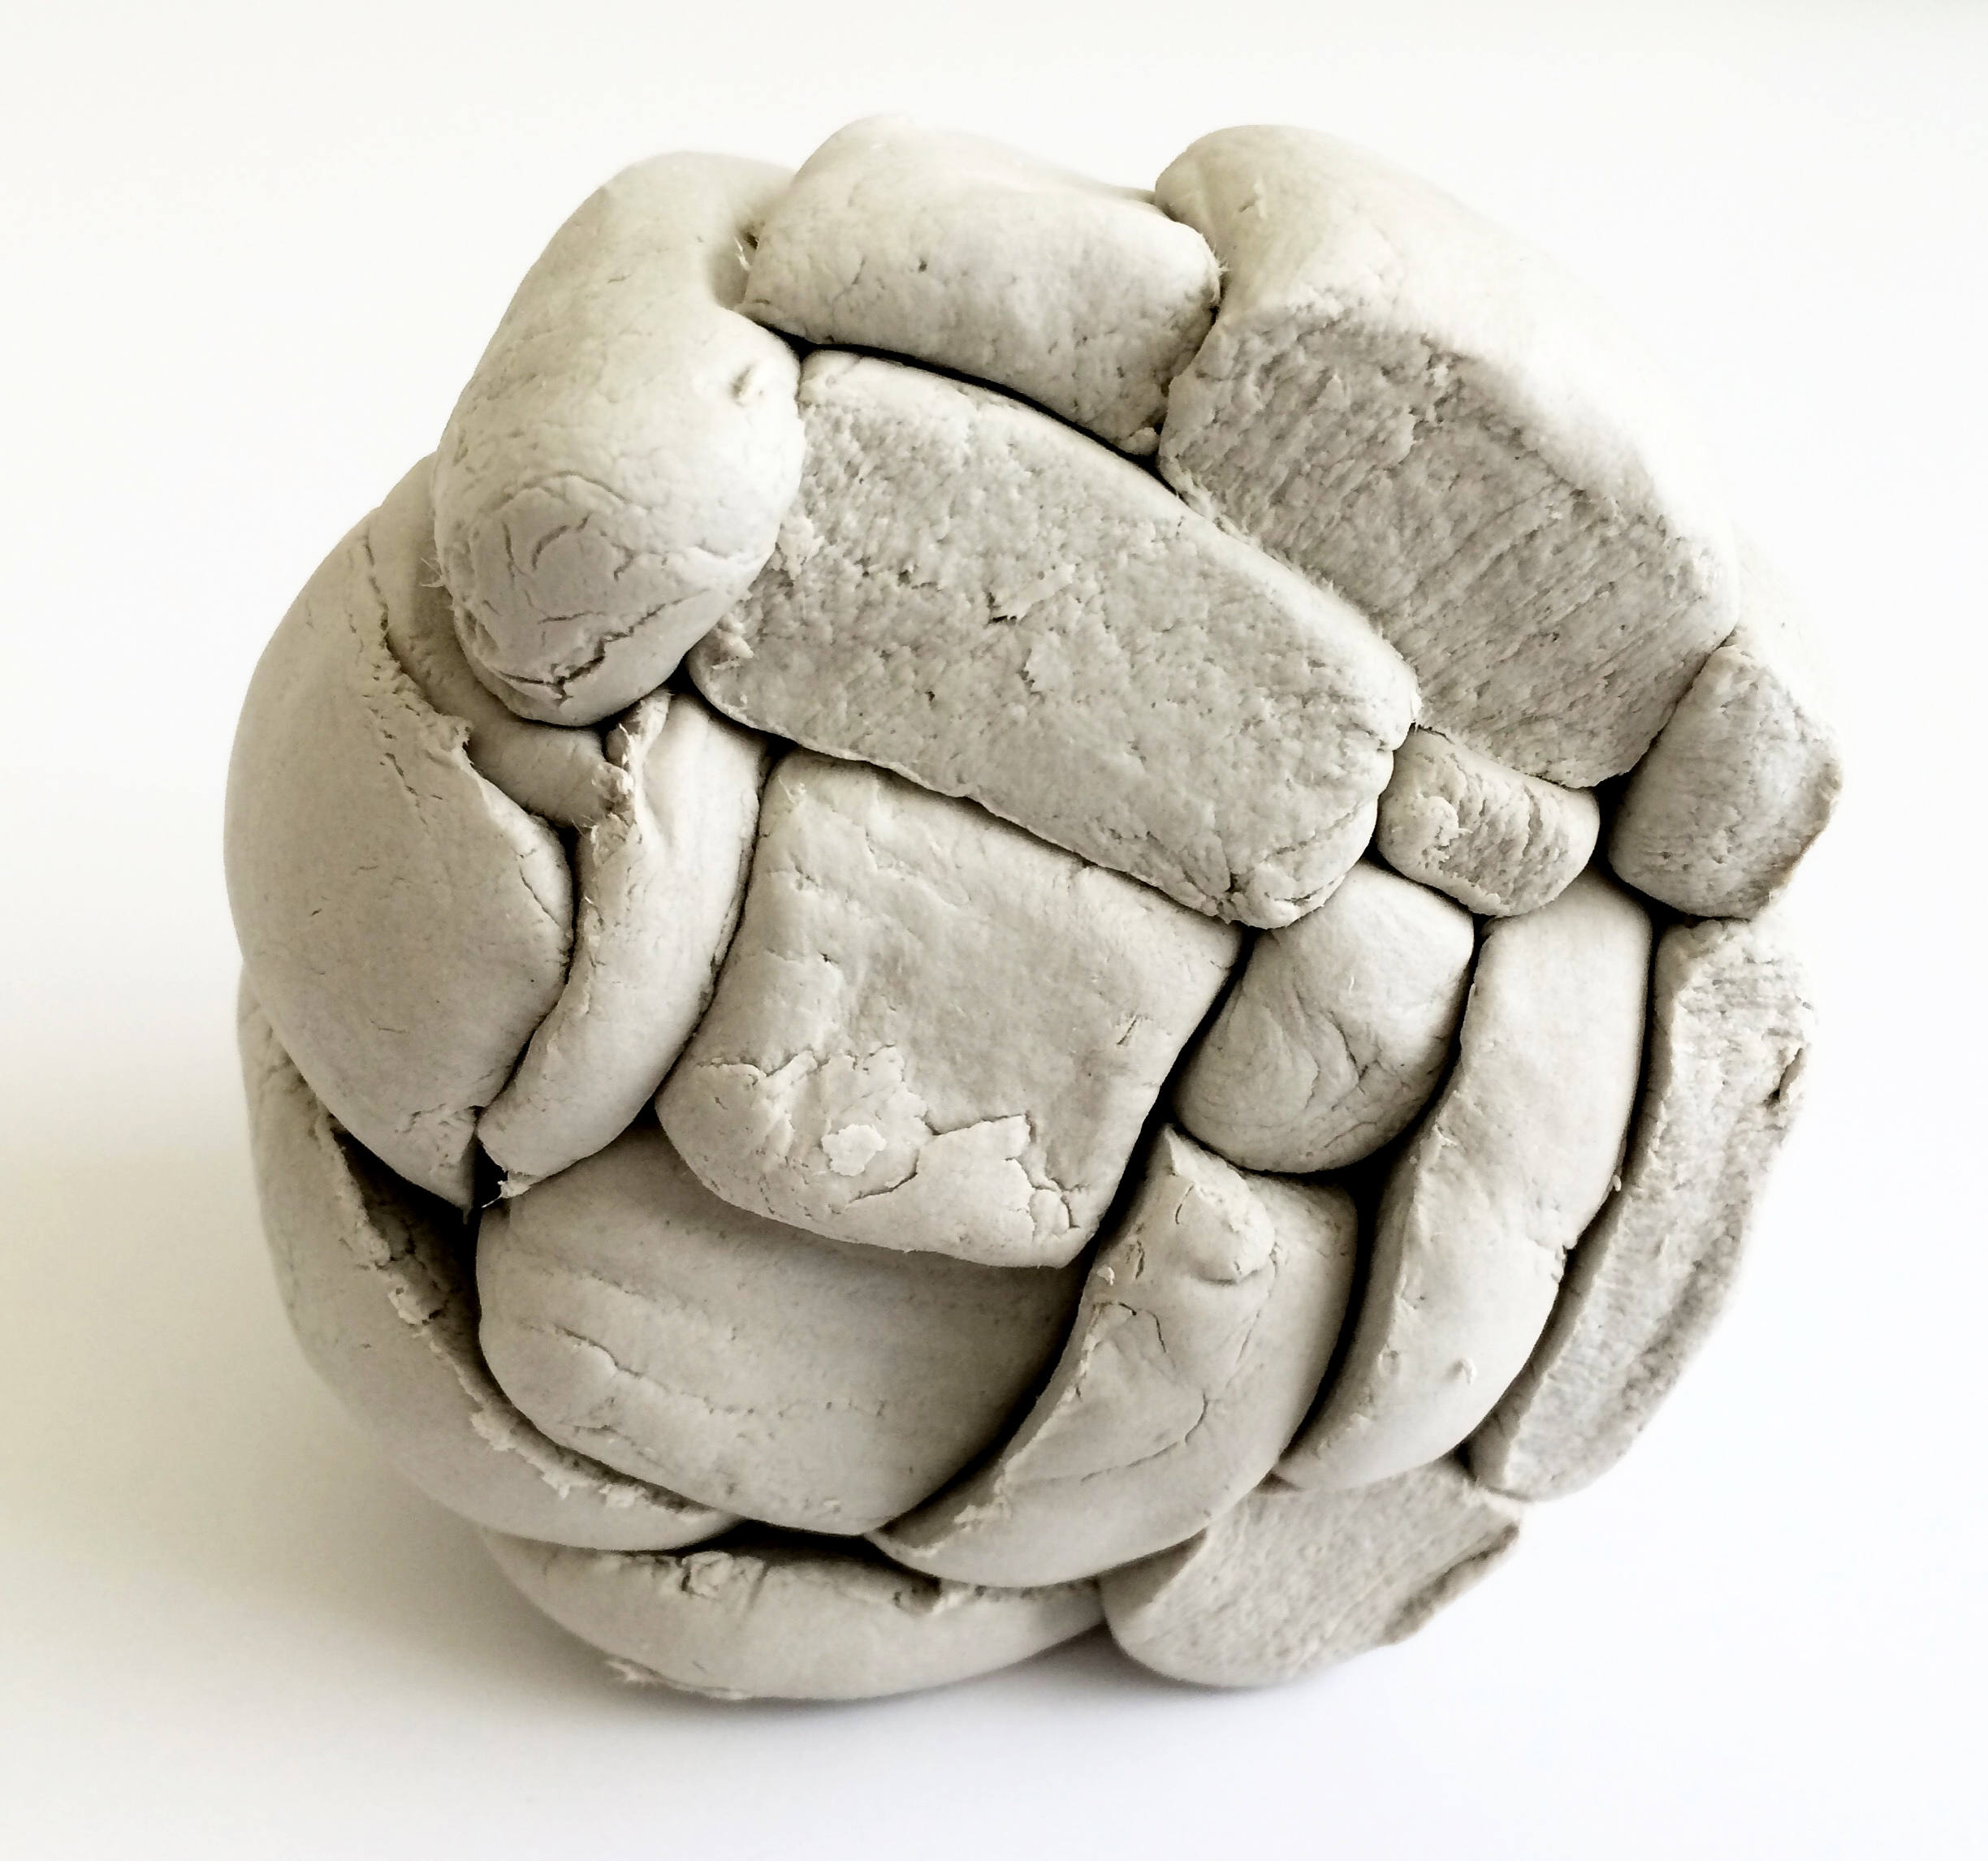 Clay Model of Stone Sphere